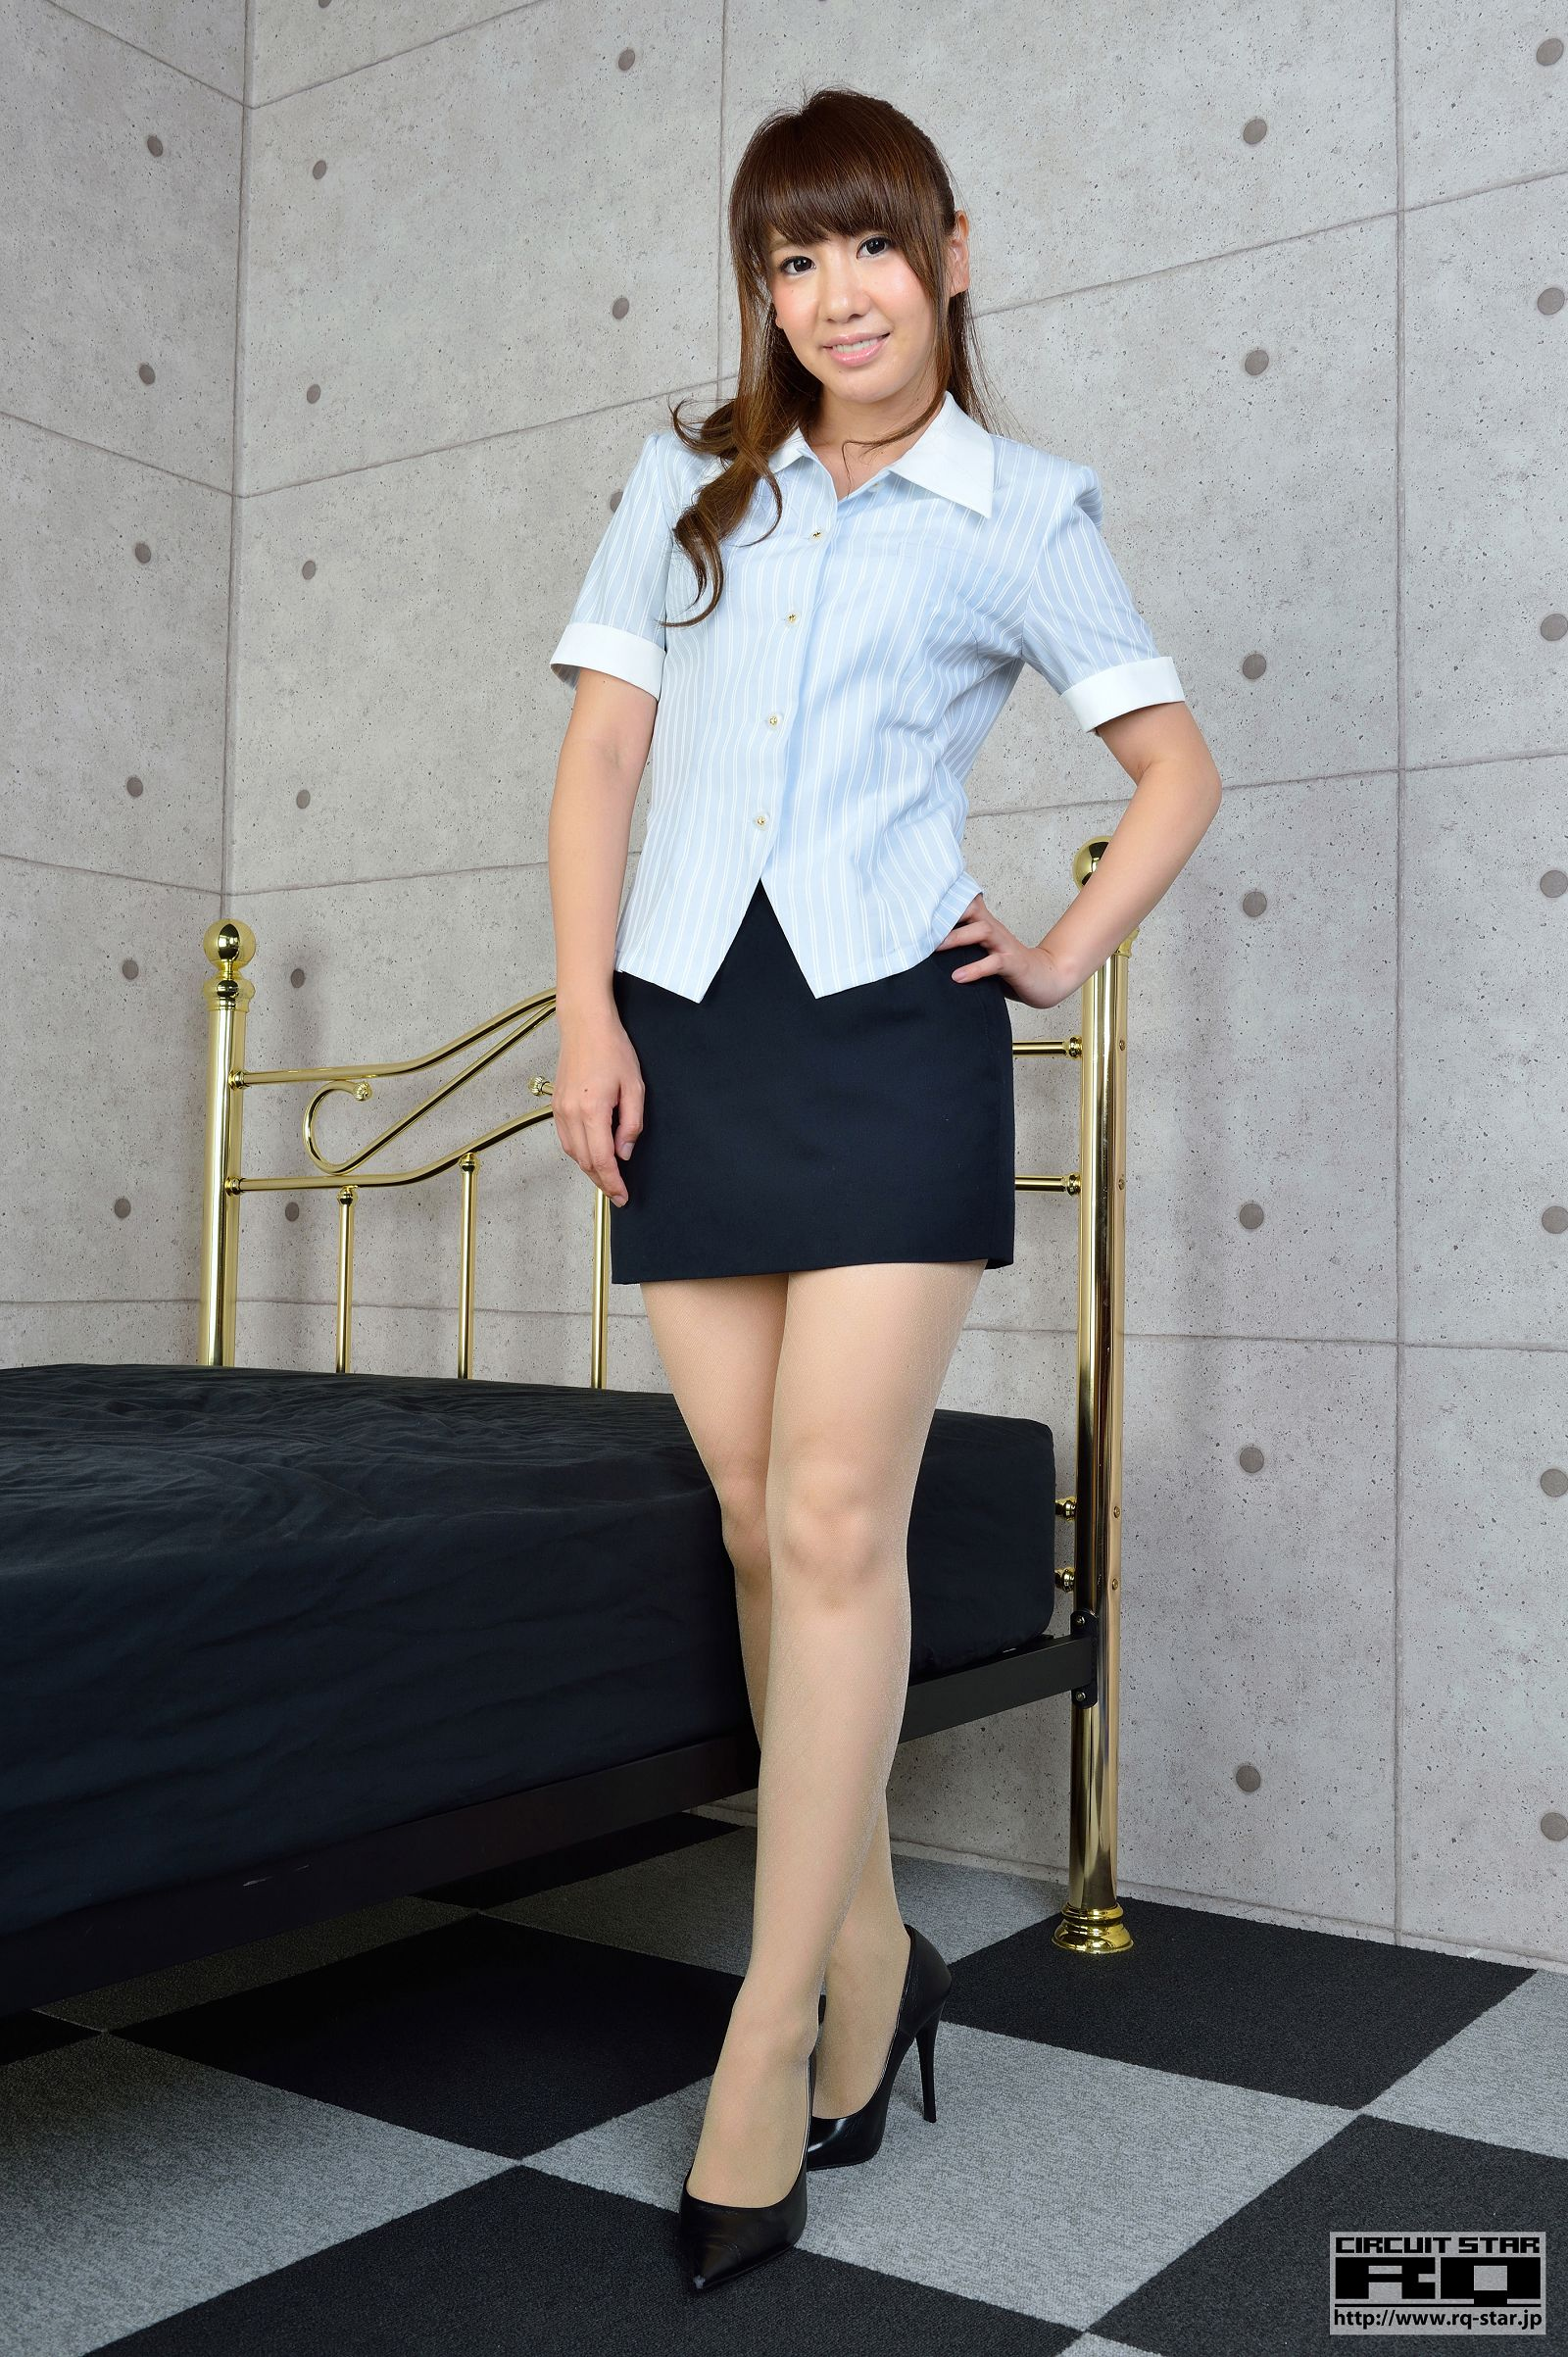 [RQ STAR美女] NO.00864 ERISA Office Lady[65P] RQ STAR 第1张